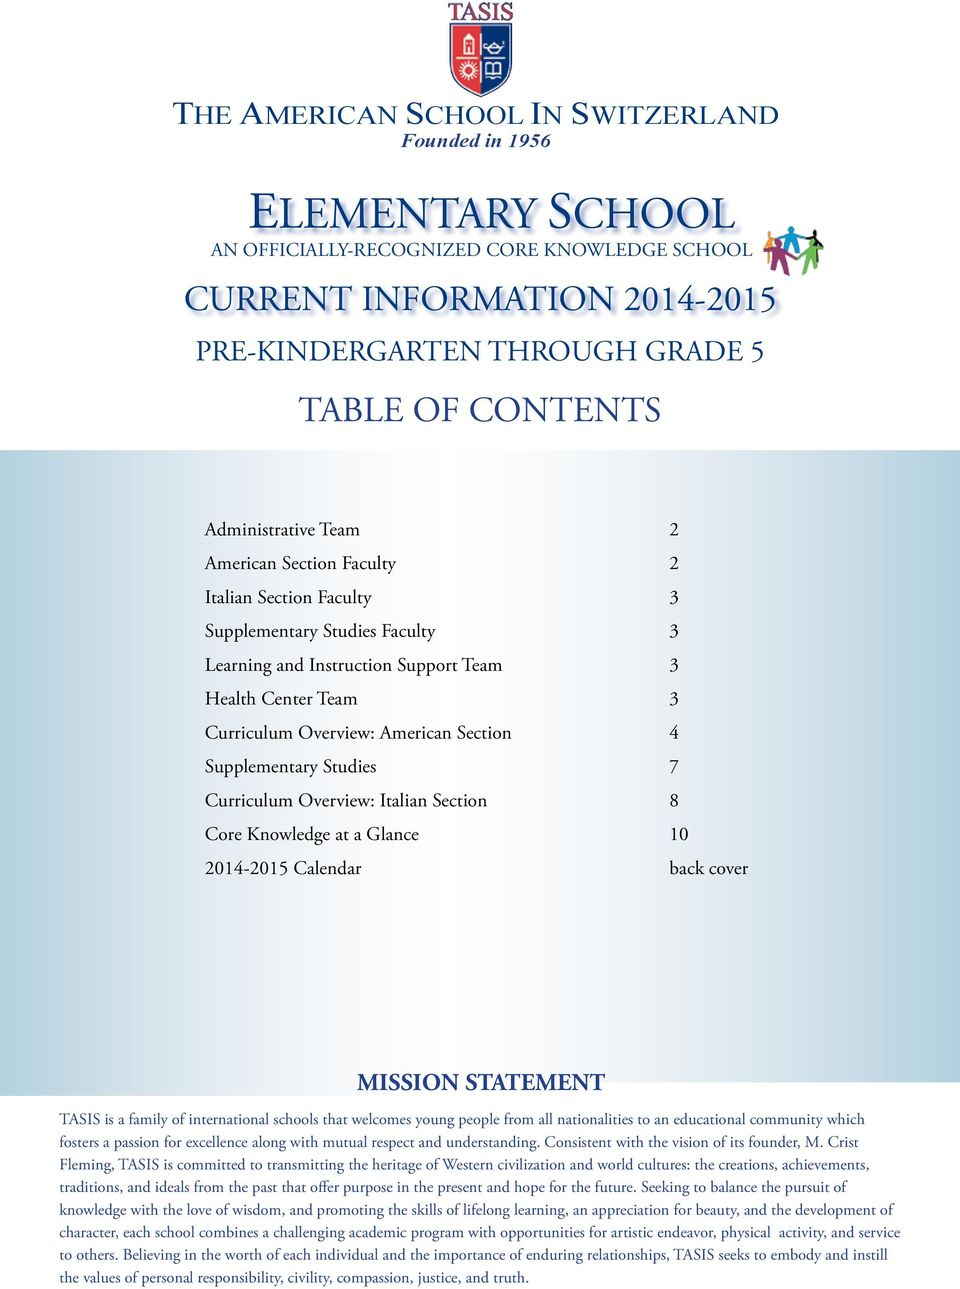 Section 4 Supplementary Studies 7 Curriculum Overview: Italian Section 8 Core Knowledge at a Glance 10 2014-2015 Calendar back cover MISSION STATEMENT TASIS is a family of international schools that